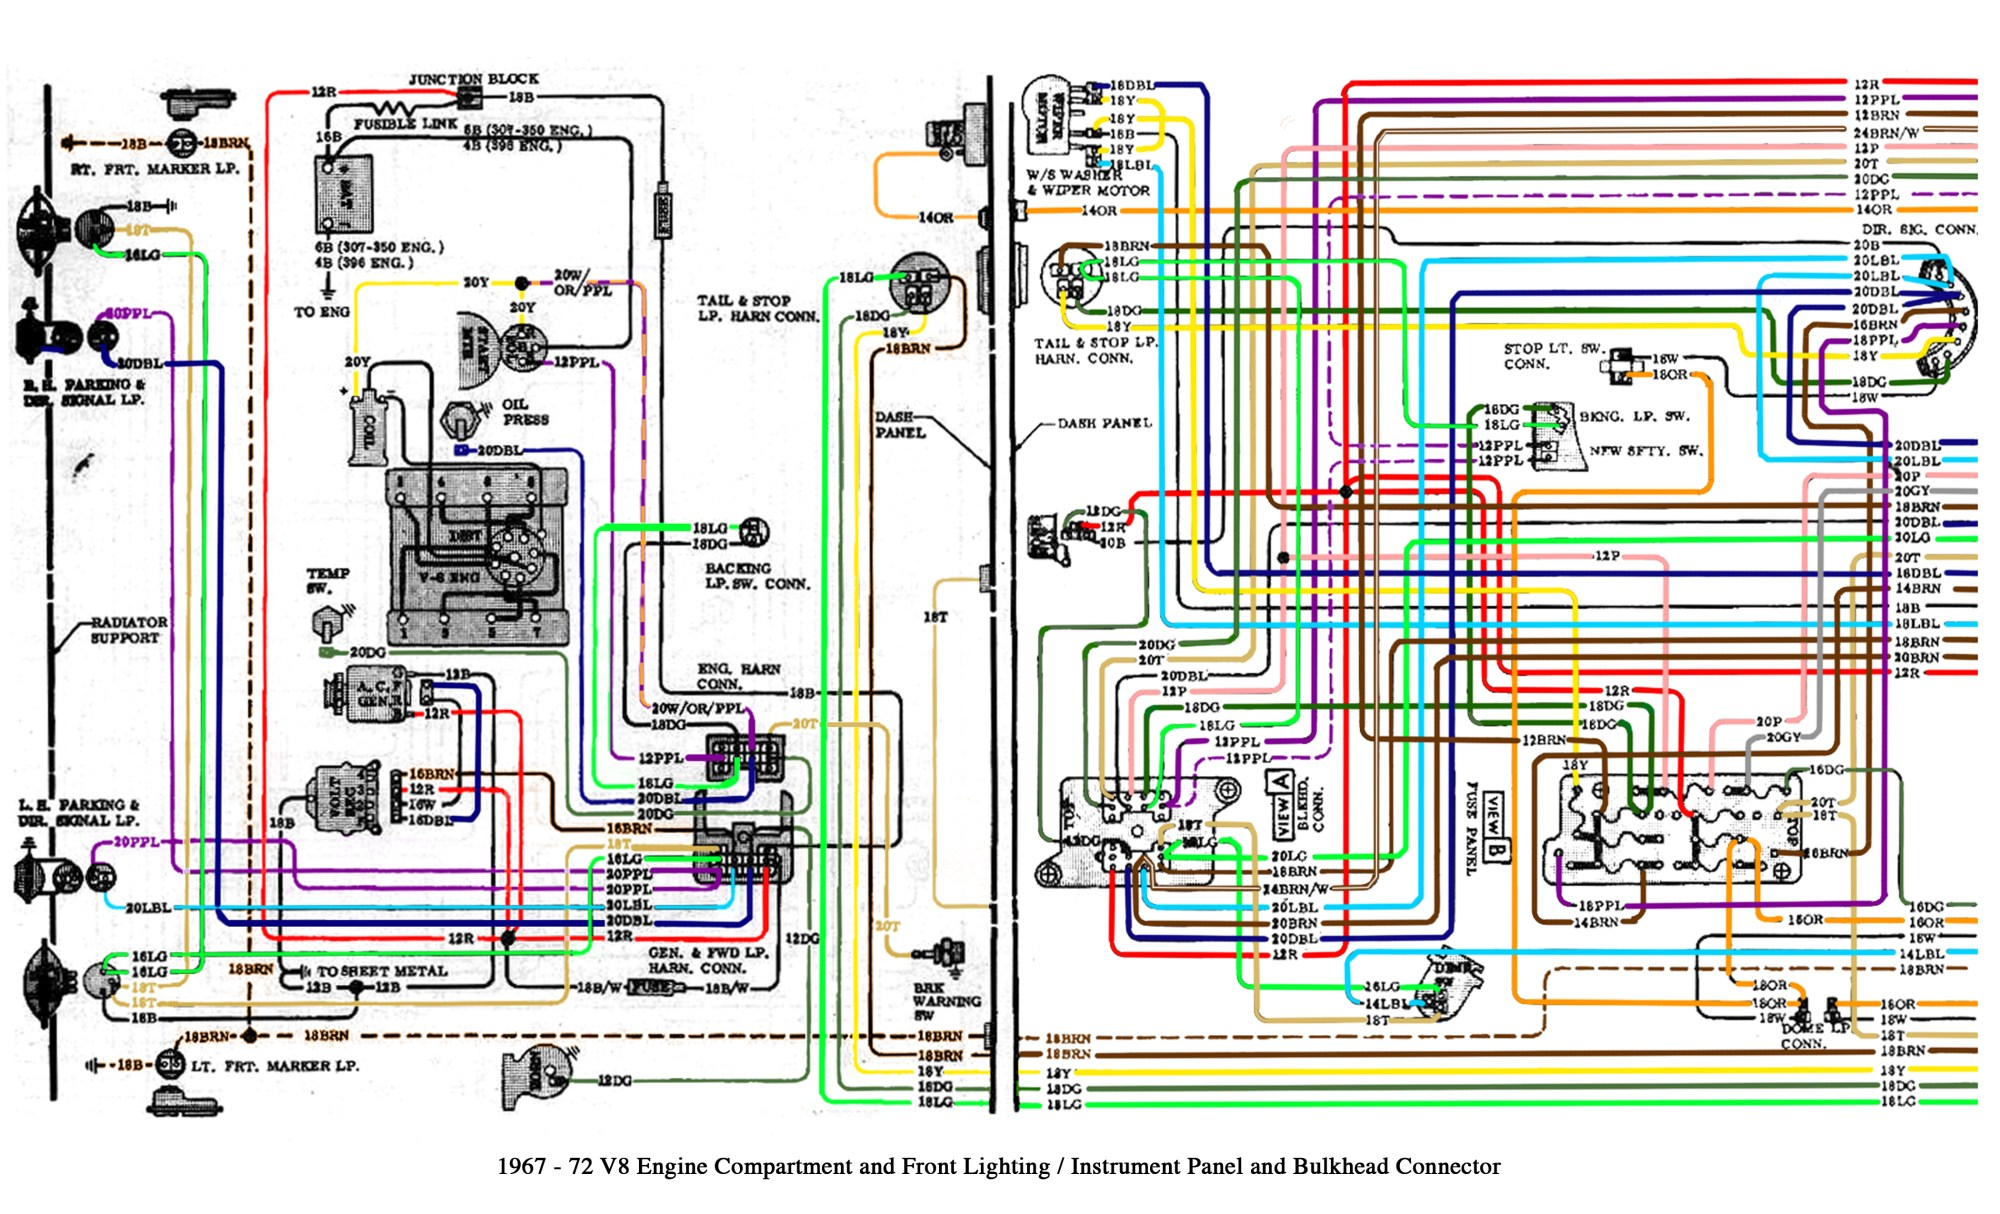 hight resolution of chevy truck wiring harness wiring diagram expert 1972 chevy truck wiring harness 1972 chevy truck wiring